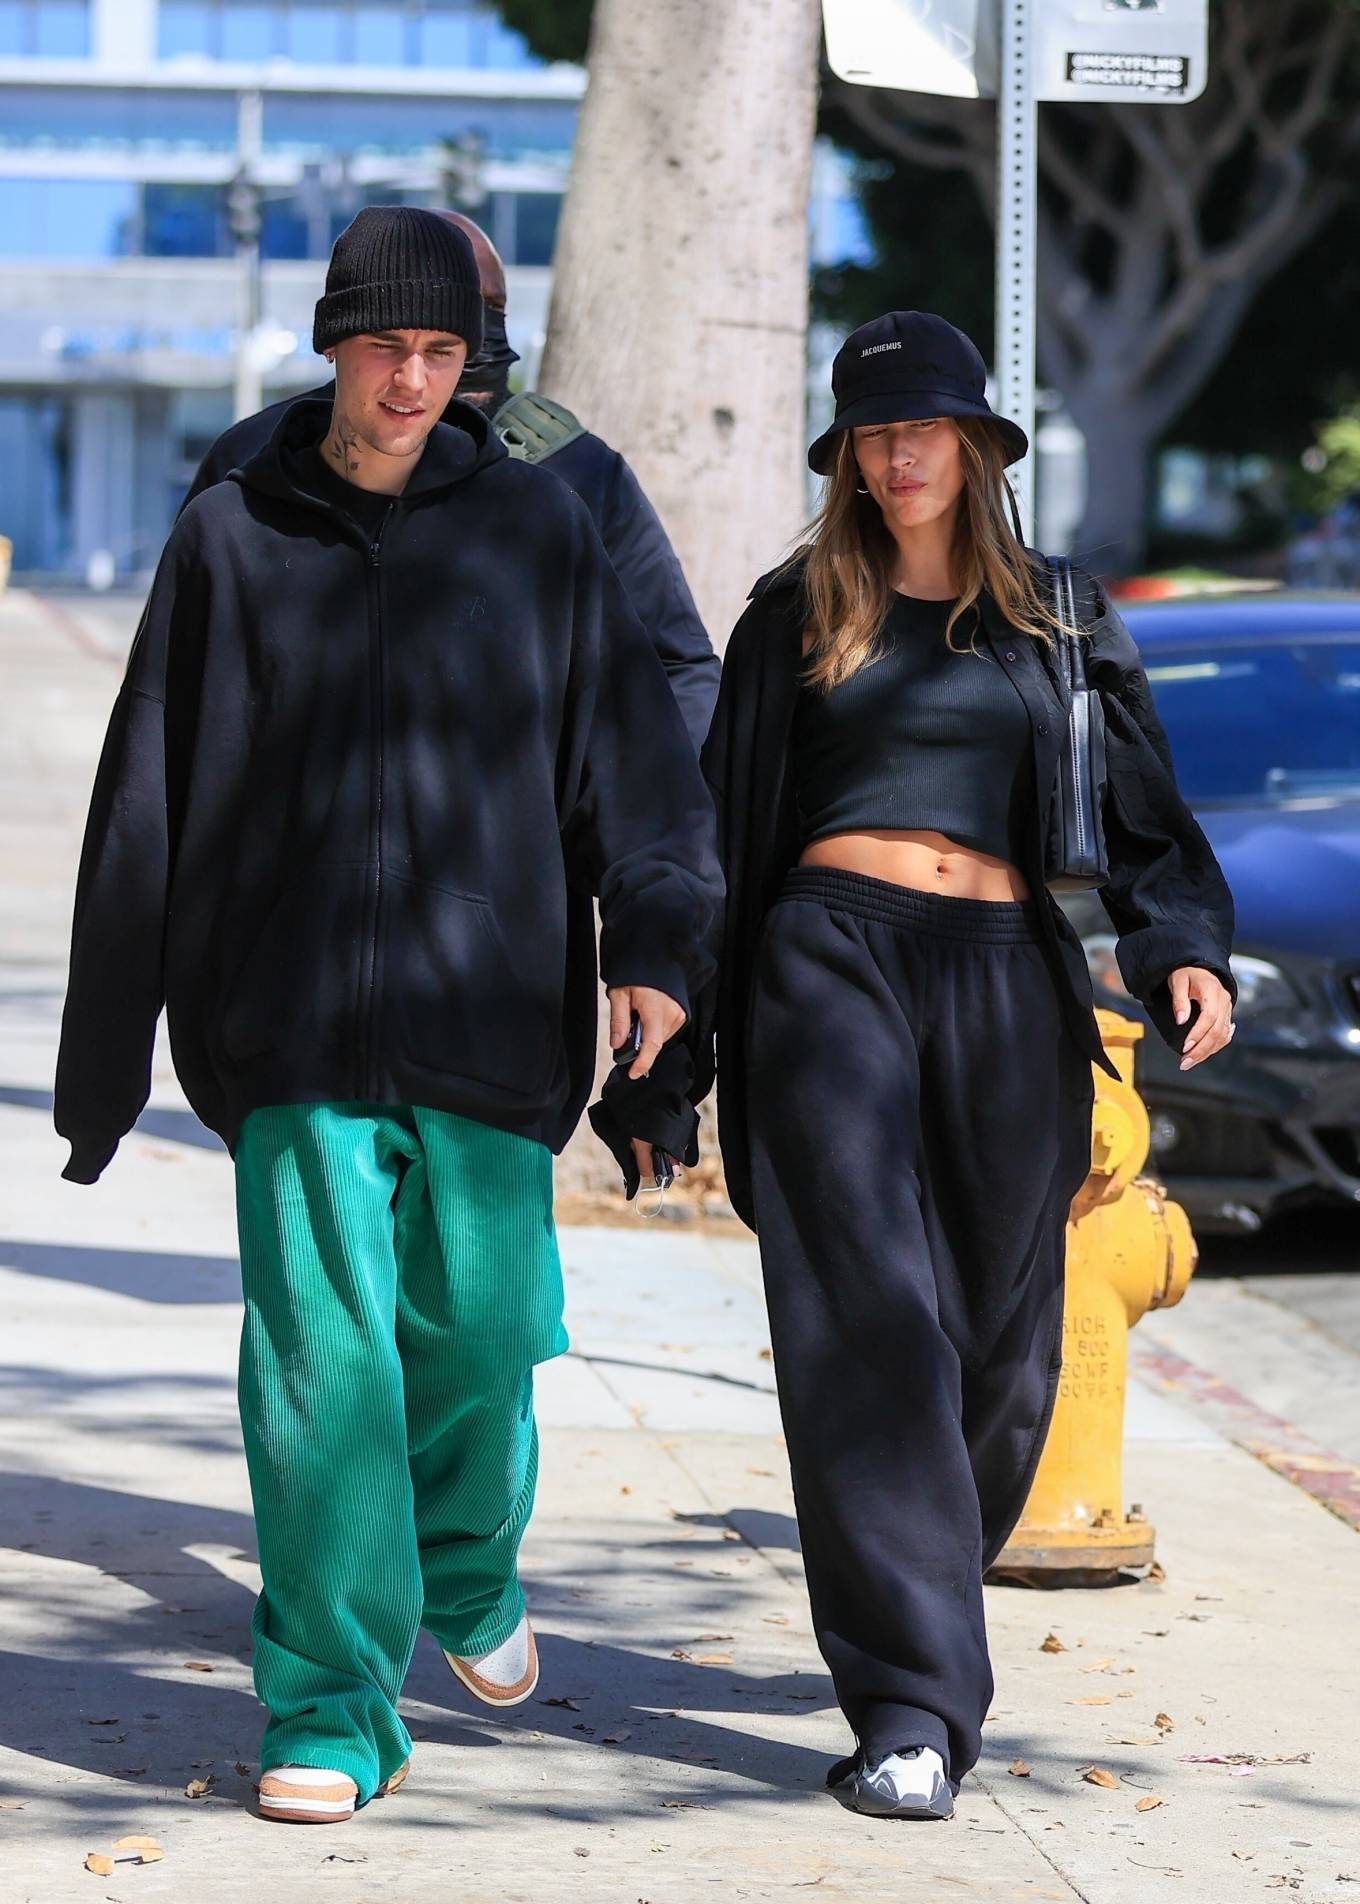 Hailey Bieber rocking round white grey slip on sneakers by Adidas x Yeezy with chunky heel